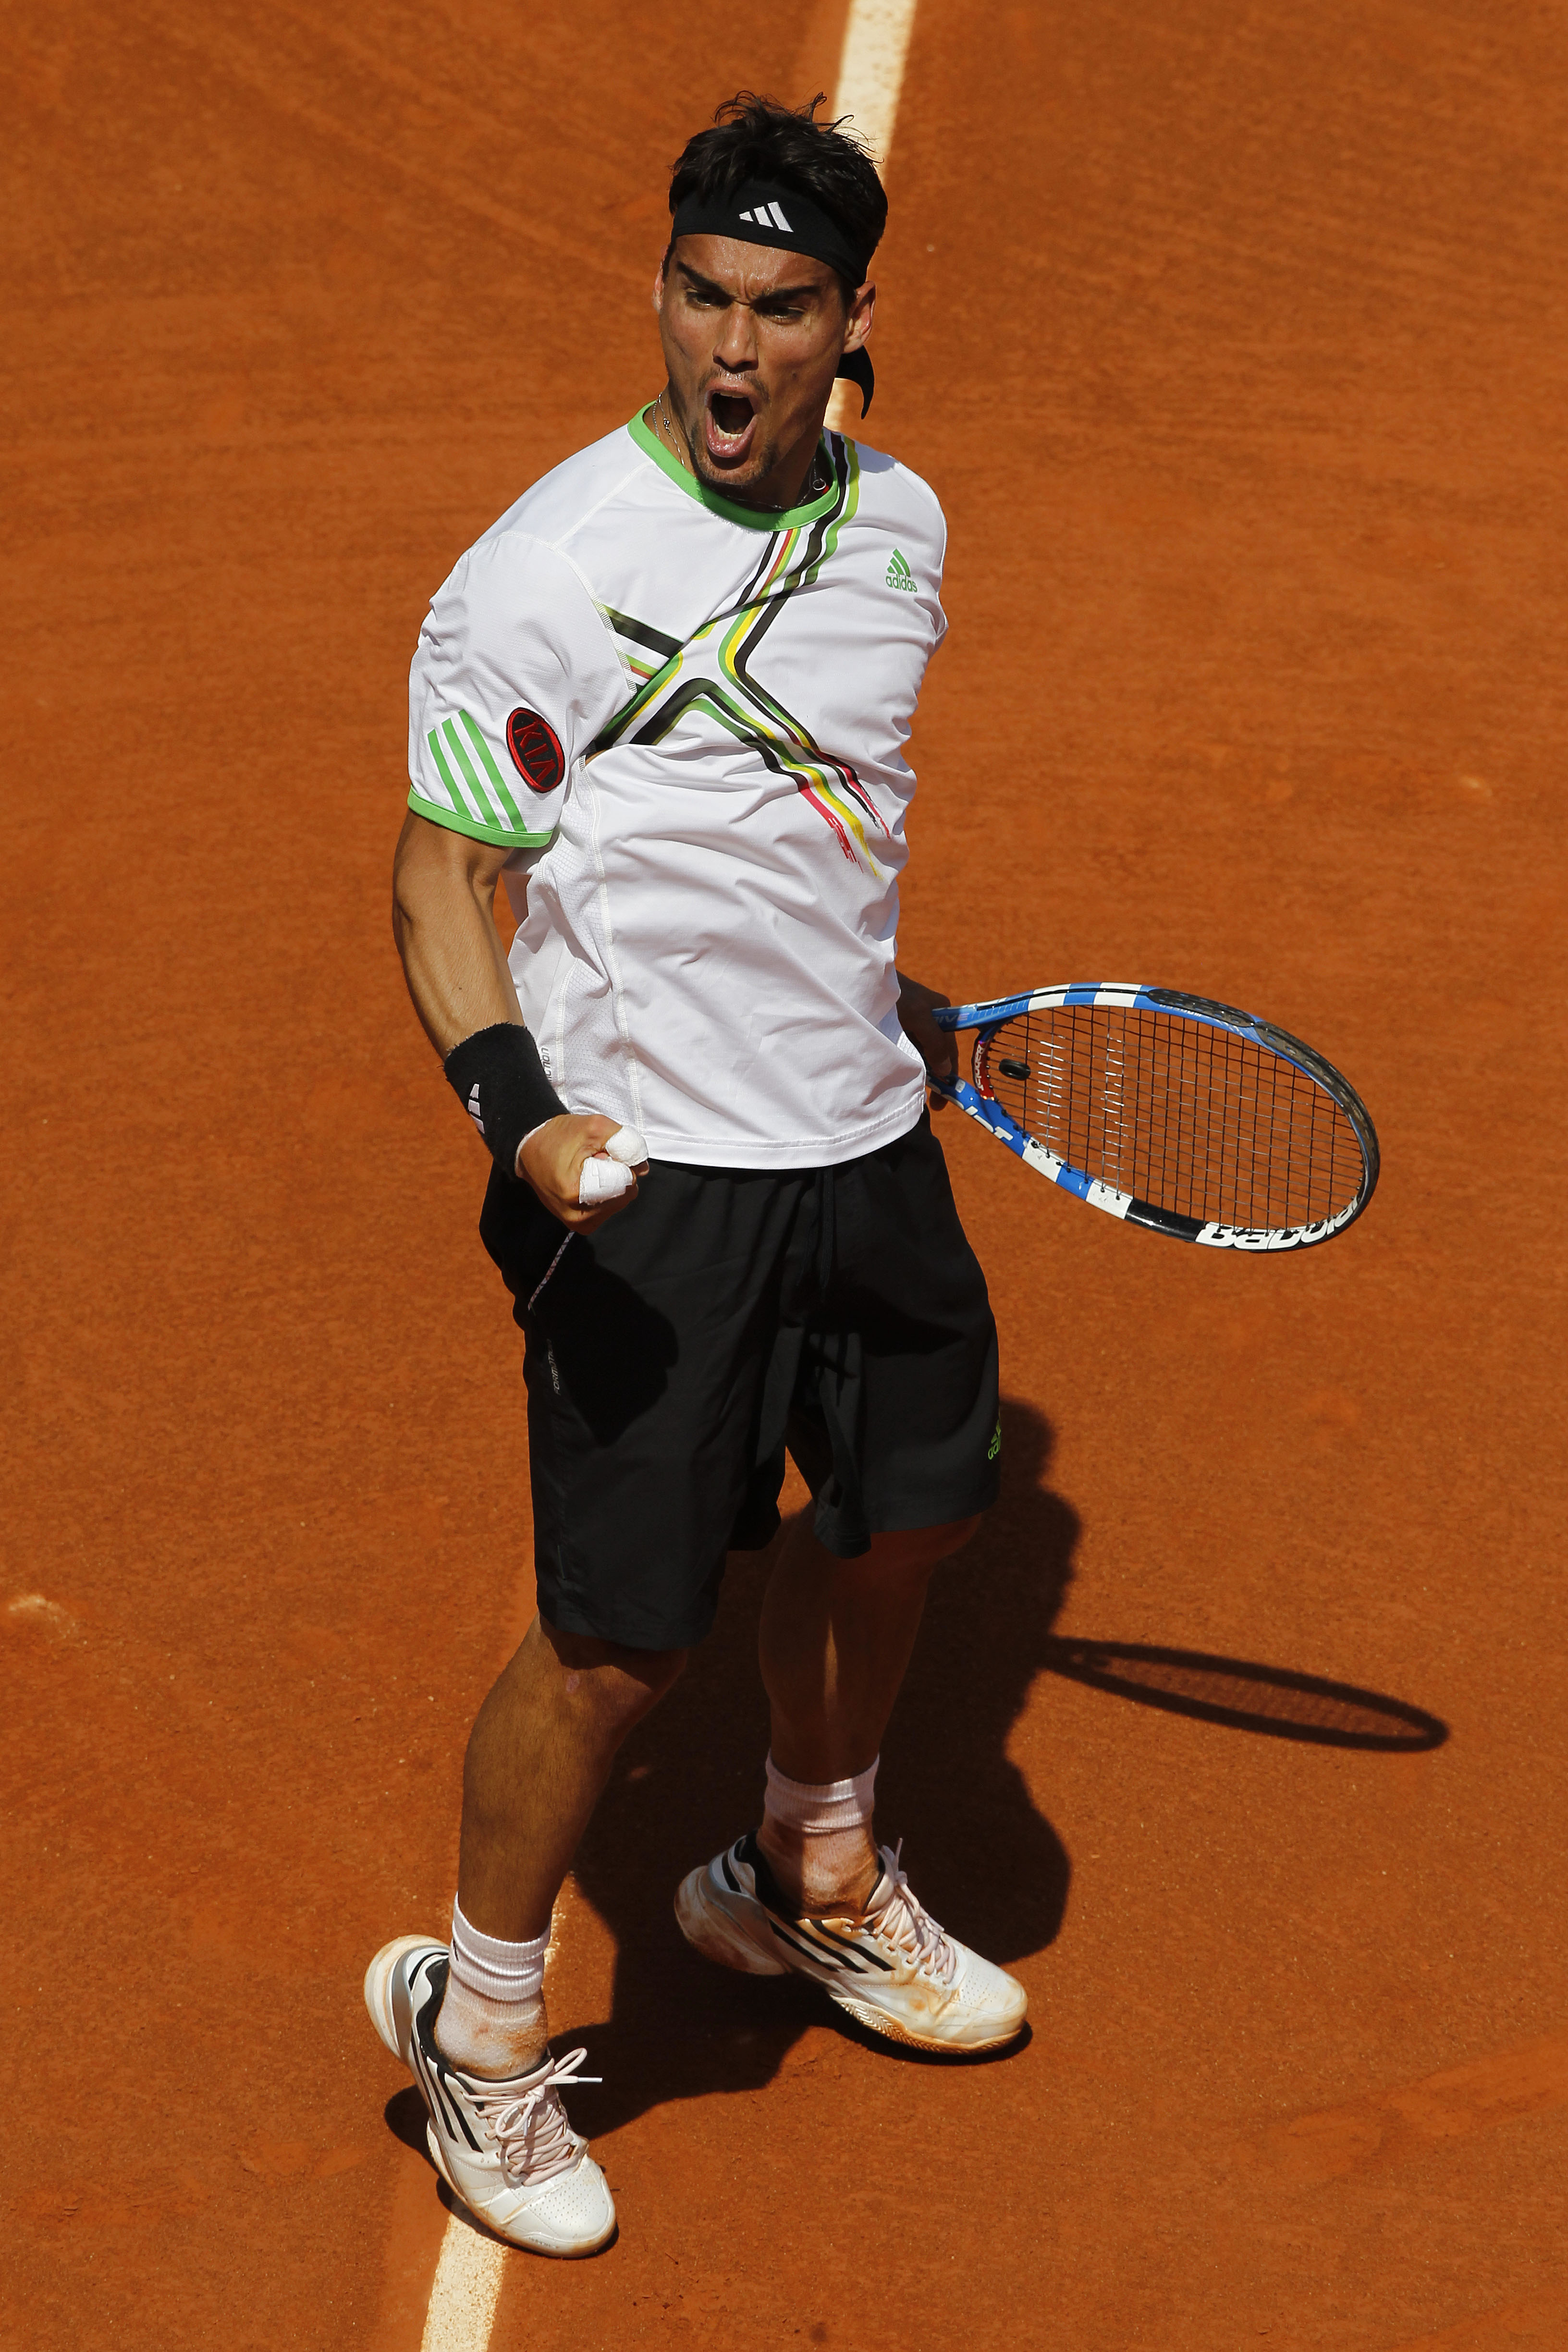 PARIS, FRANCE - MAY 29:  Fabio Fognini of Italy celebrates a break point during the men's singles round four match between Fabio Fognini of Italy and Albert Montanes of Spain on day eight of the French Open at Roland Garros on May 29, 2011 in Paris, Franc